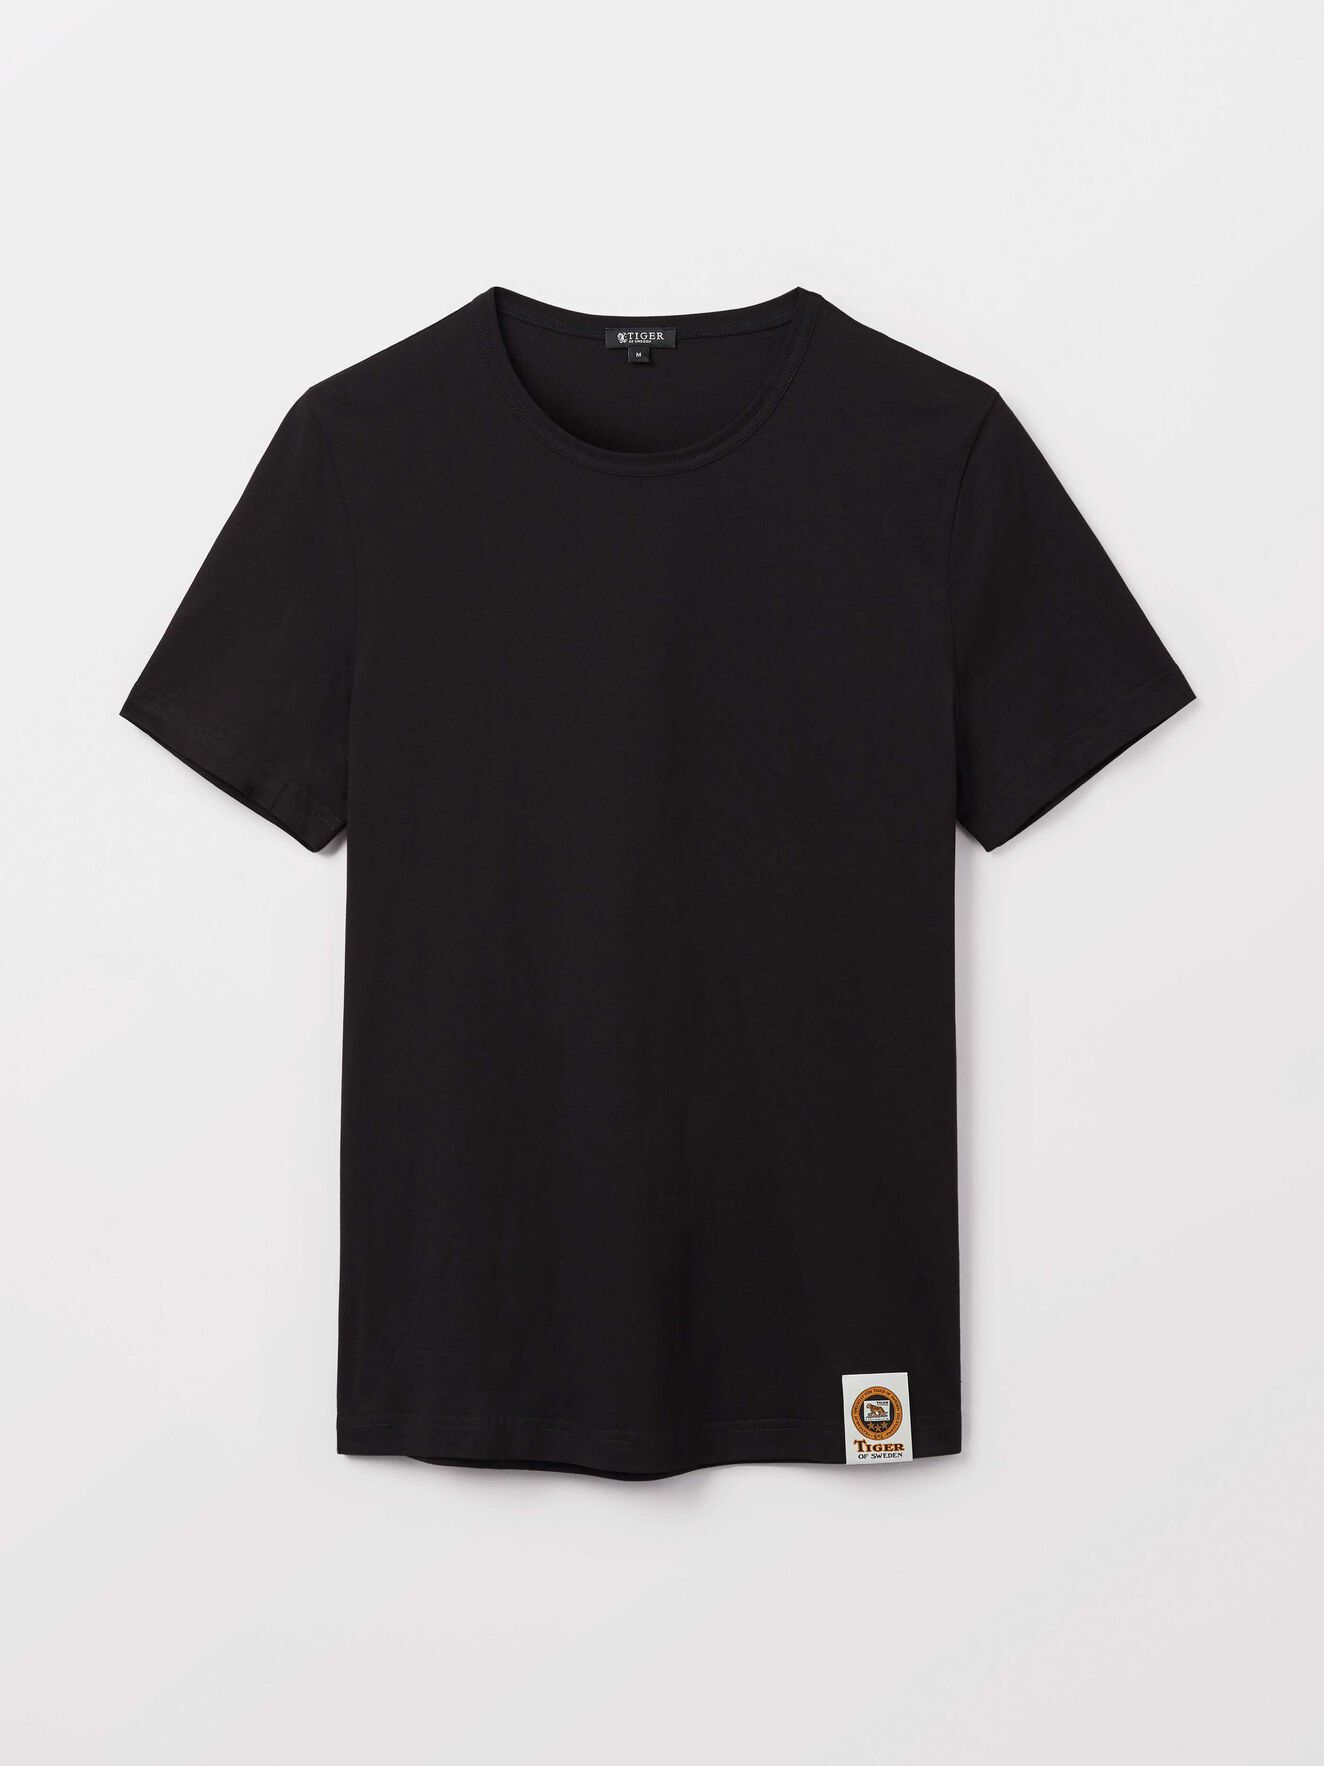 Darian T-Shirt in Black from Tiger of Sweden